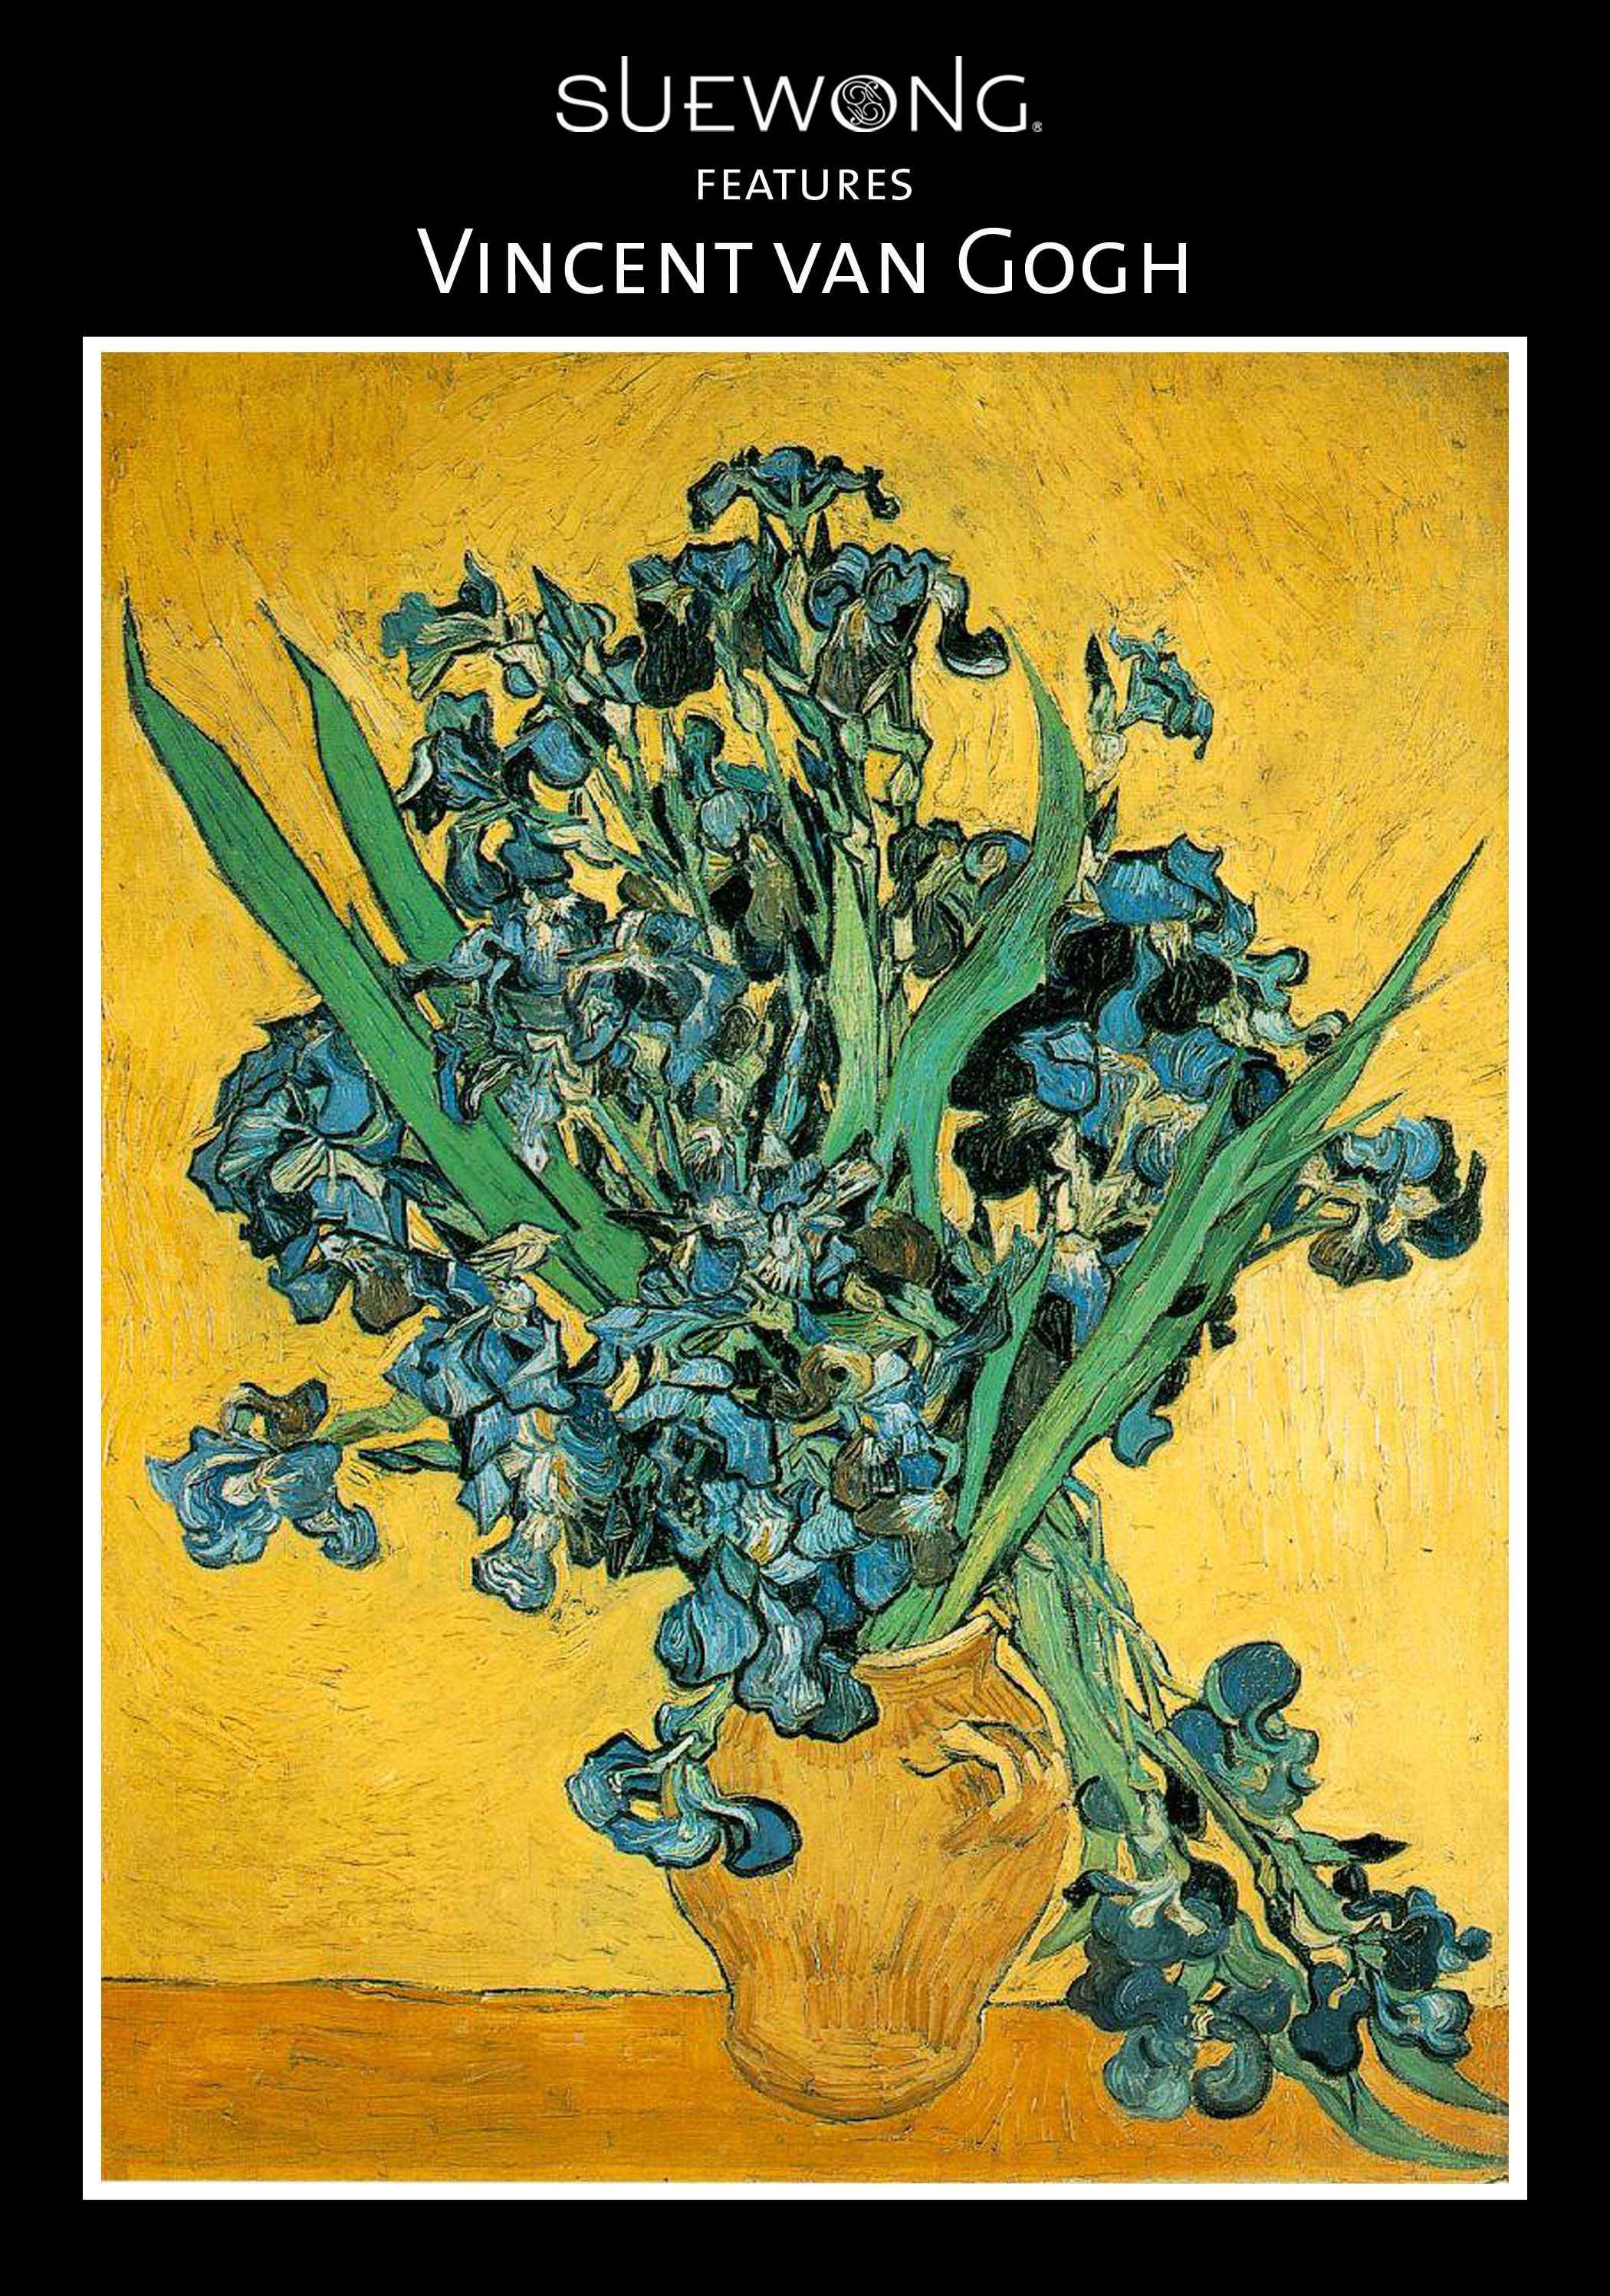 VINCENT VAN GOGH was a #Dutch #PostImpressionist Master whose innovative art influenced modern Expressionism, Fauvism, and early Abstract art. #VanGogh produced all of his work during a 10-year period. In 1889. Tormented by mental illness for most of his life, Van Gogh created many of his masterpieces while institutionalized. He is now regarded as one of the most important artists of the 19th century. #teamsuewong #suewong #painting #art #inspiration #illustration